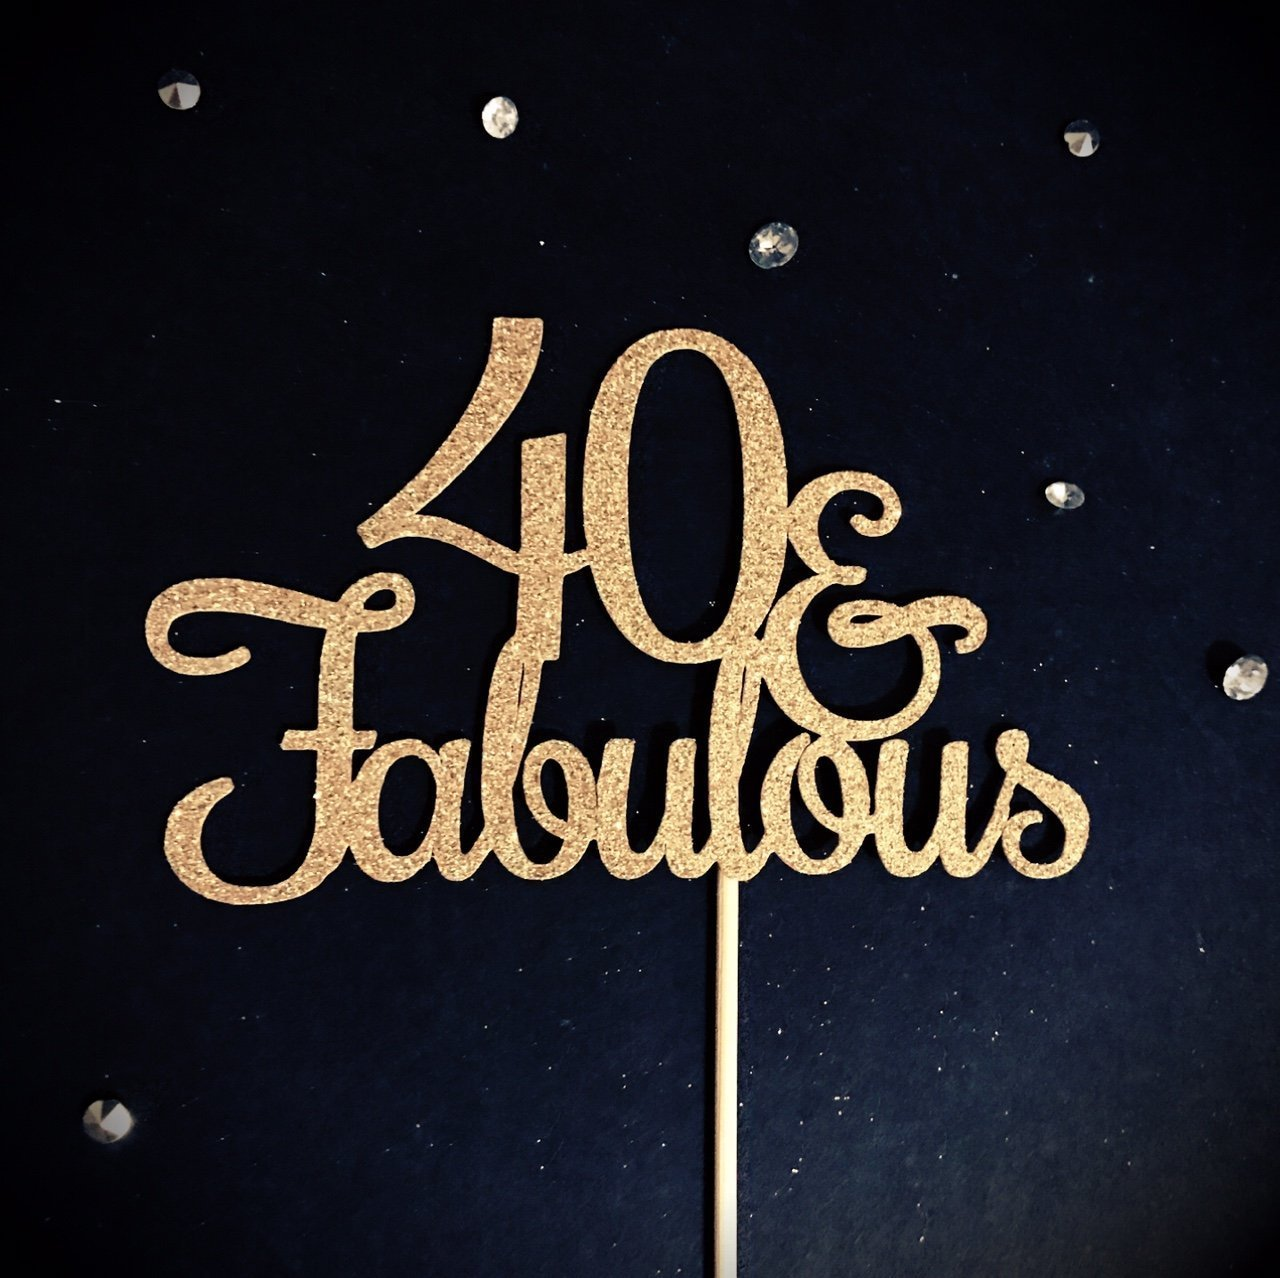 40 and Fabulous Cake Topper, Glitter Cake Topper, Birthday Cake Topper, 40th Birthday Party, Happy 40th, Forty Birthday and Fabulous, 40th Anniversary Cake Topper, 40 Birthday Centerpiece